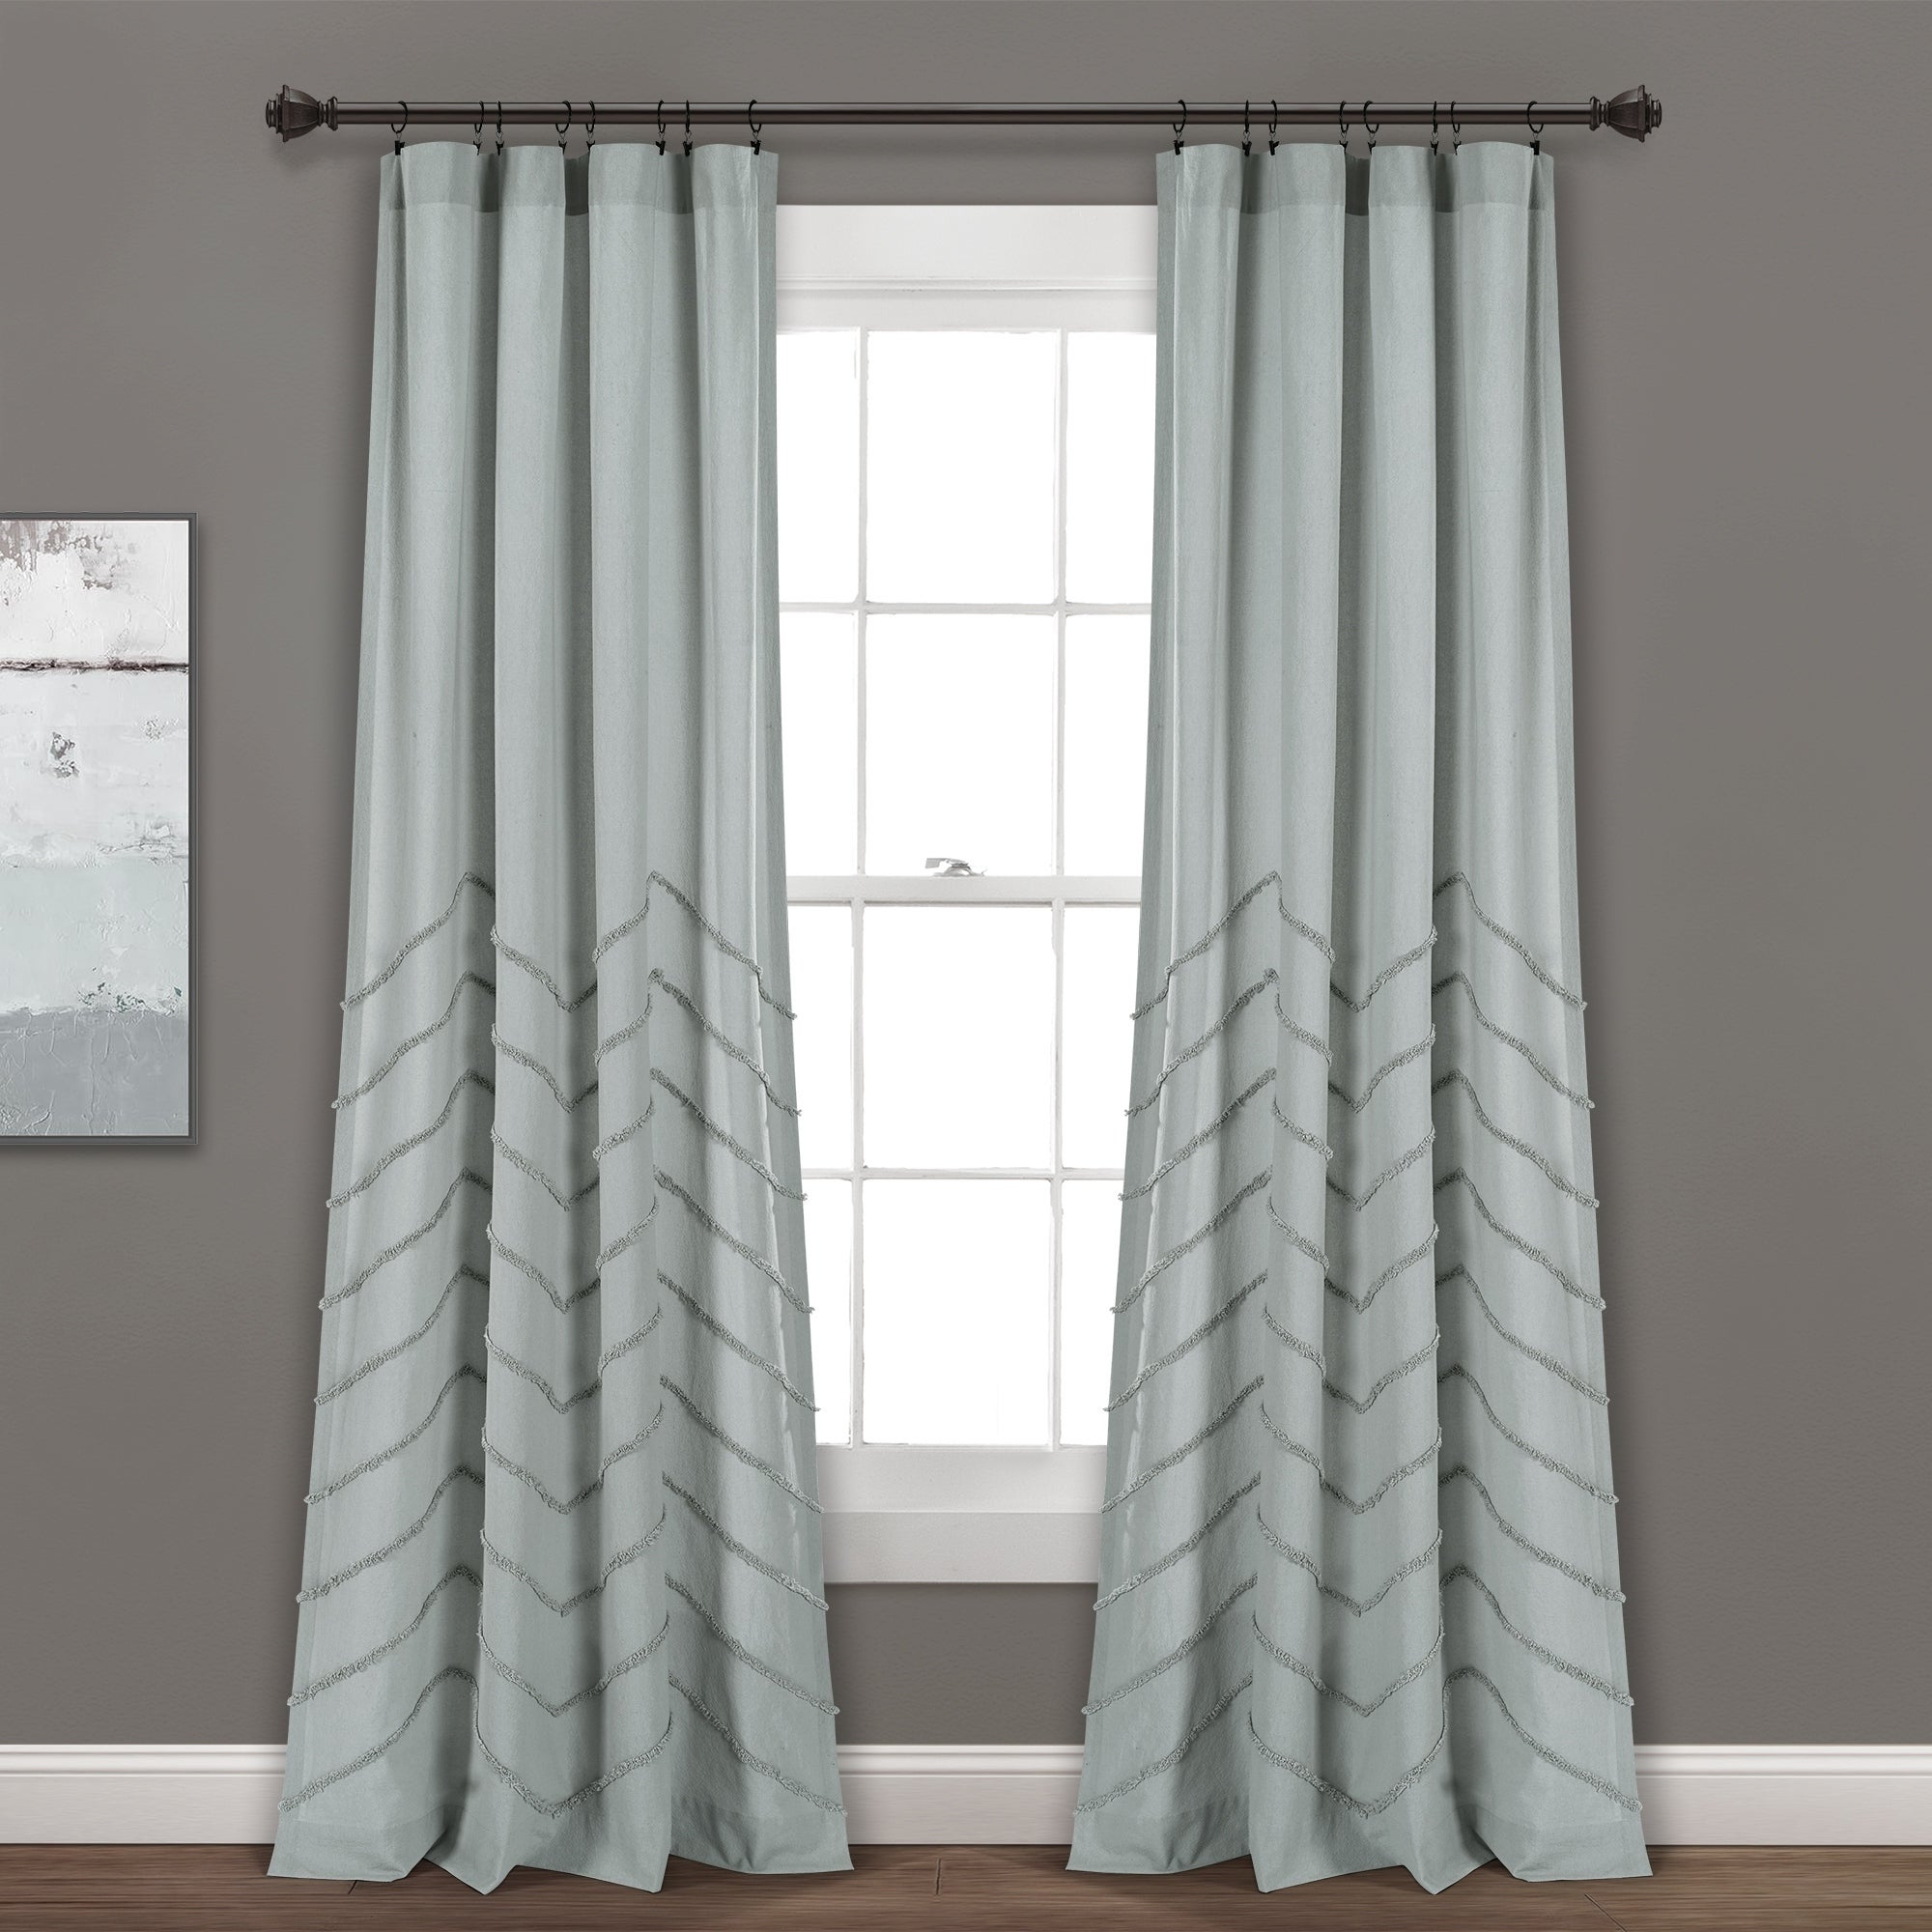 Lush Decor Chenille Chevron Window Curtain Panel Pair Within Famous The Gray Barn Kind Koala Curtain Panel Pairs (View 10 of 20)